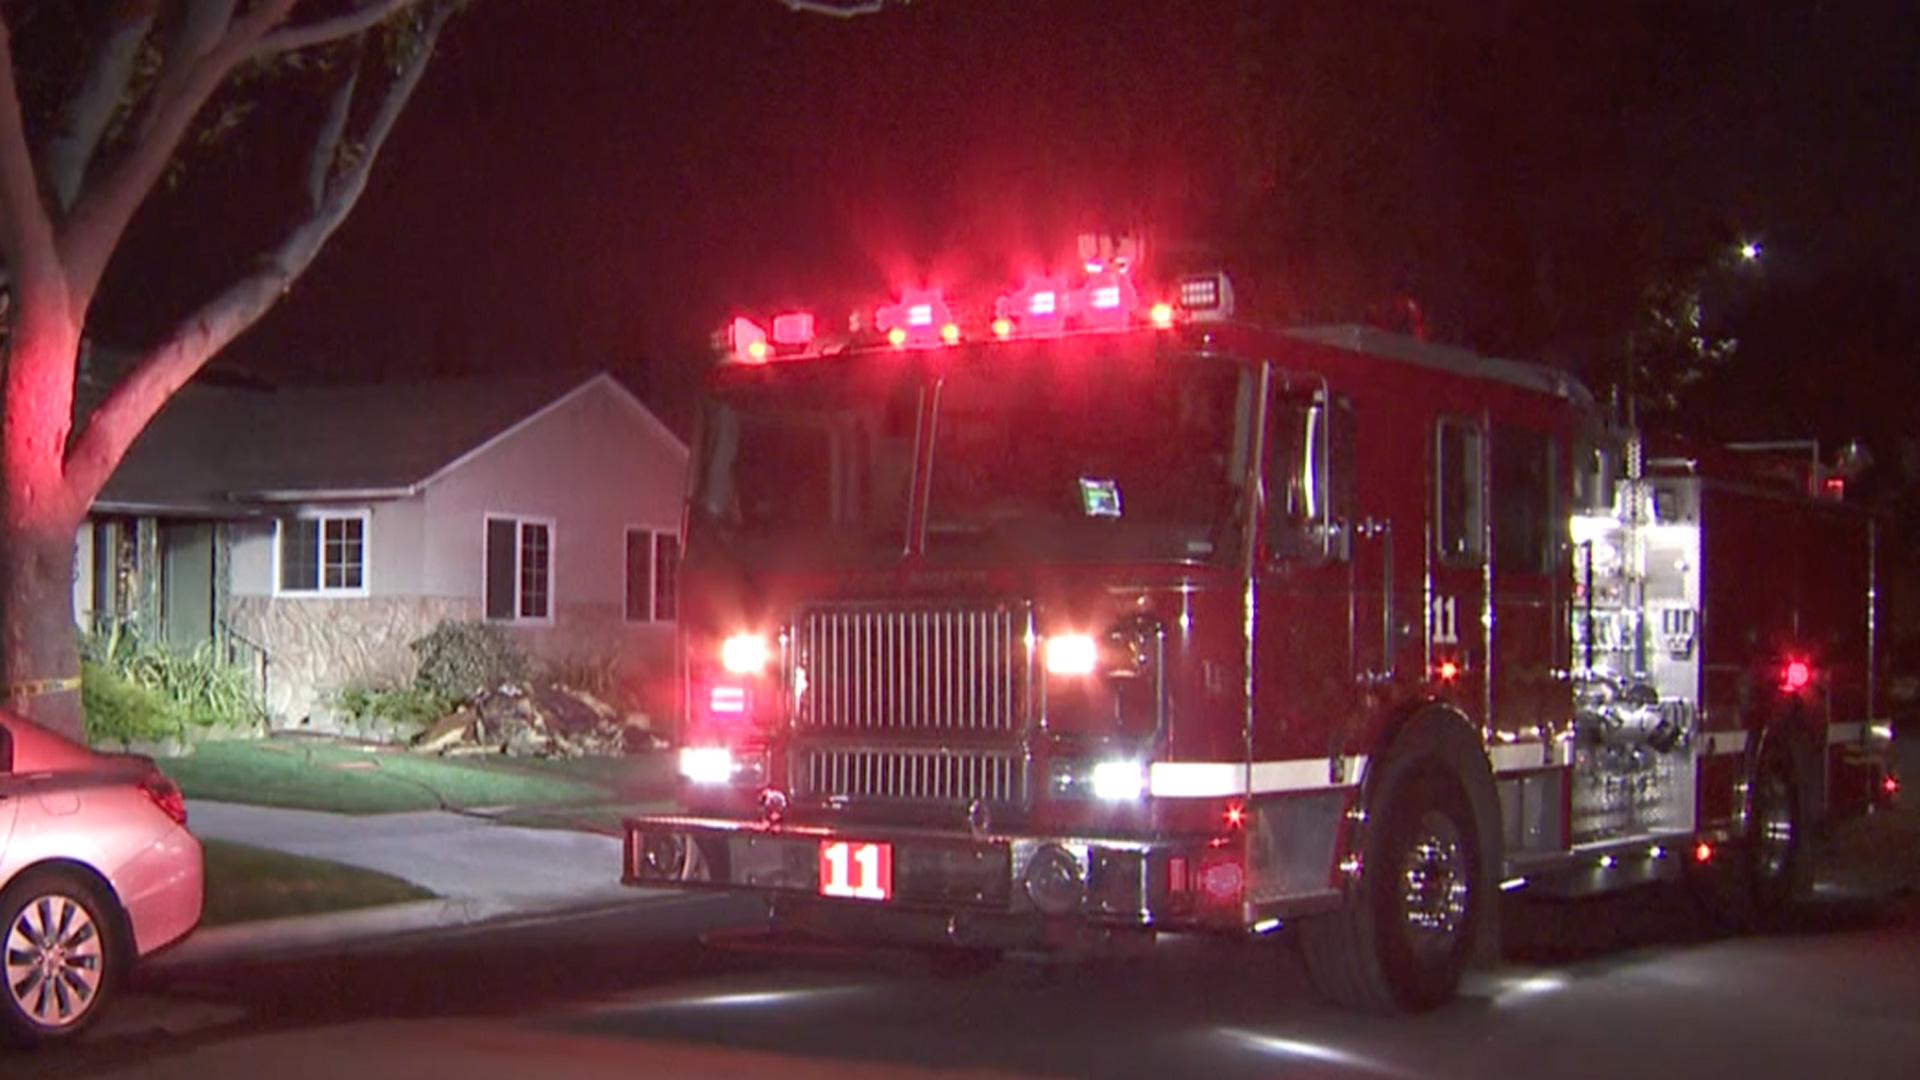 An 80-year-old man died when a fire broke out at home in Long Beach on Jan. 13, 2021. (KTLA)